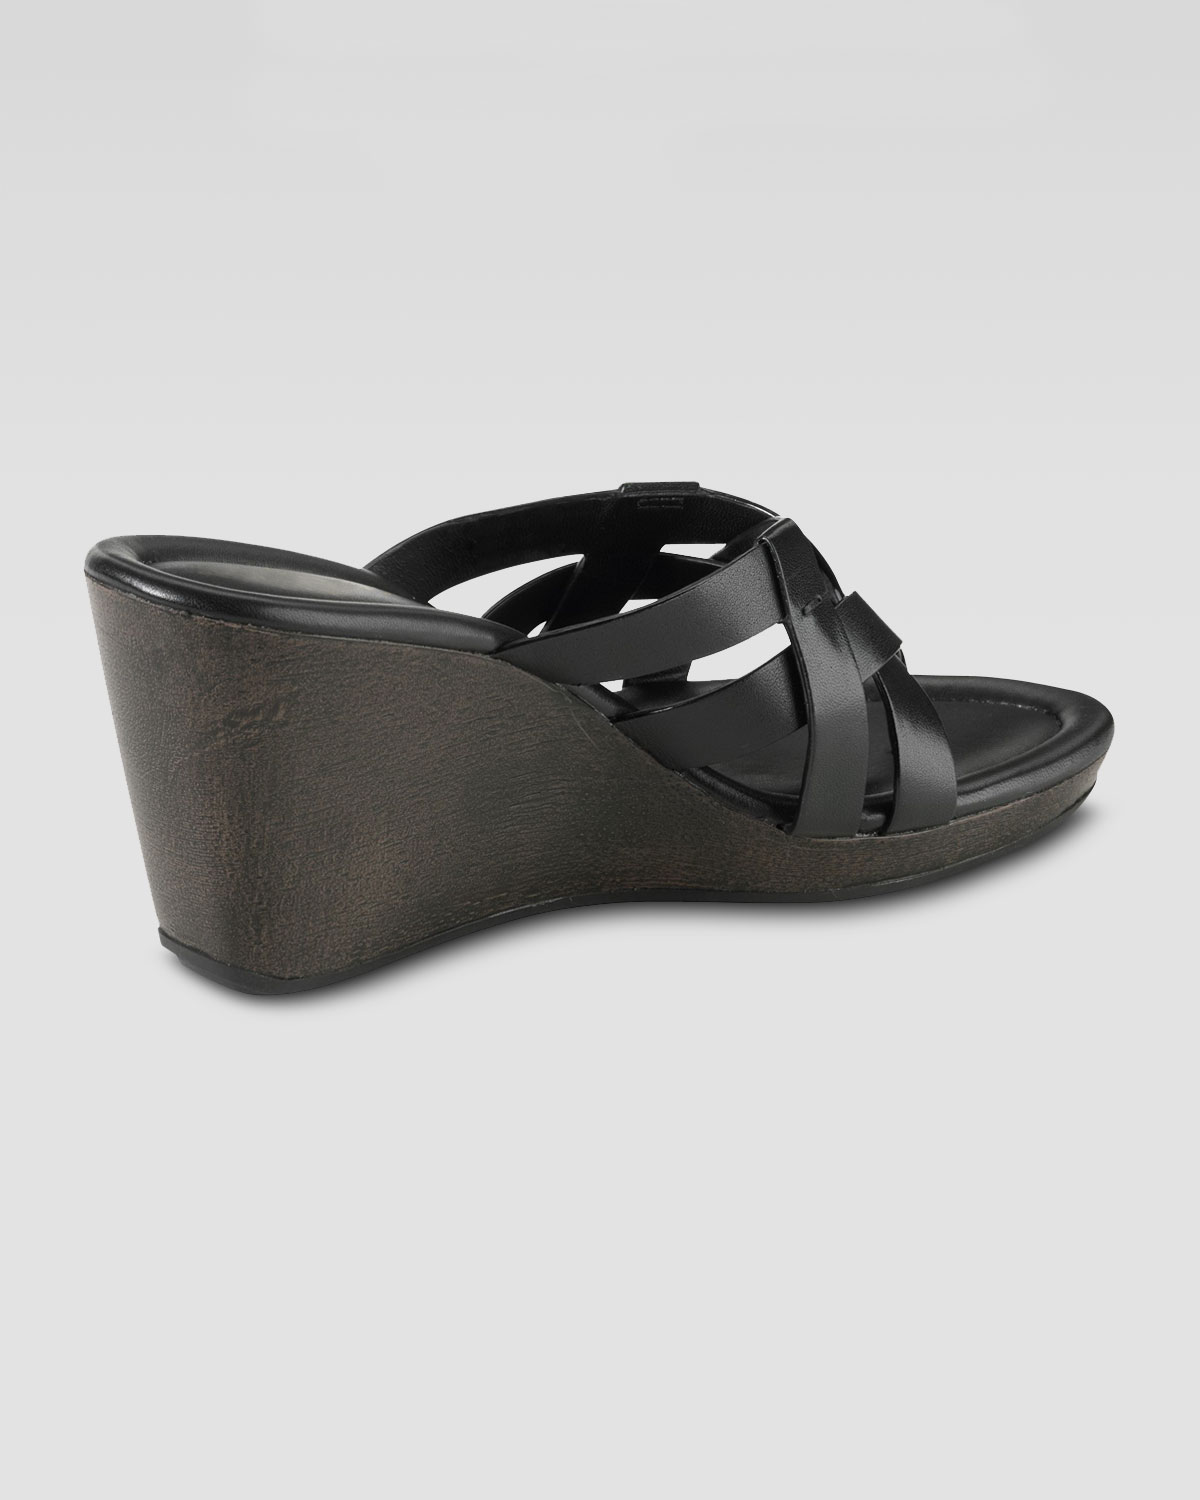 94aaef3199c83 Lyst - Cole Haan Bonnie Strappy Wedge Thong Sandal in Black